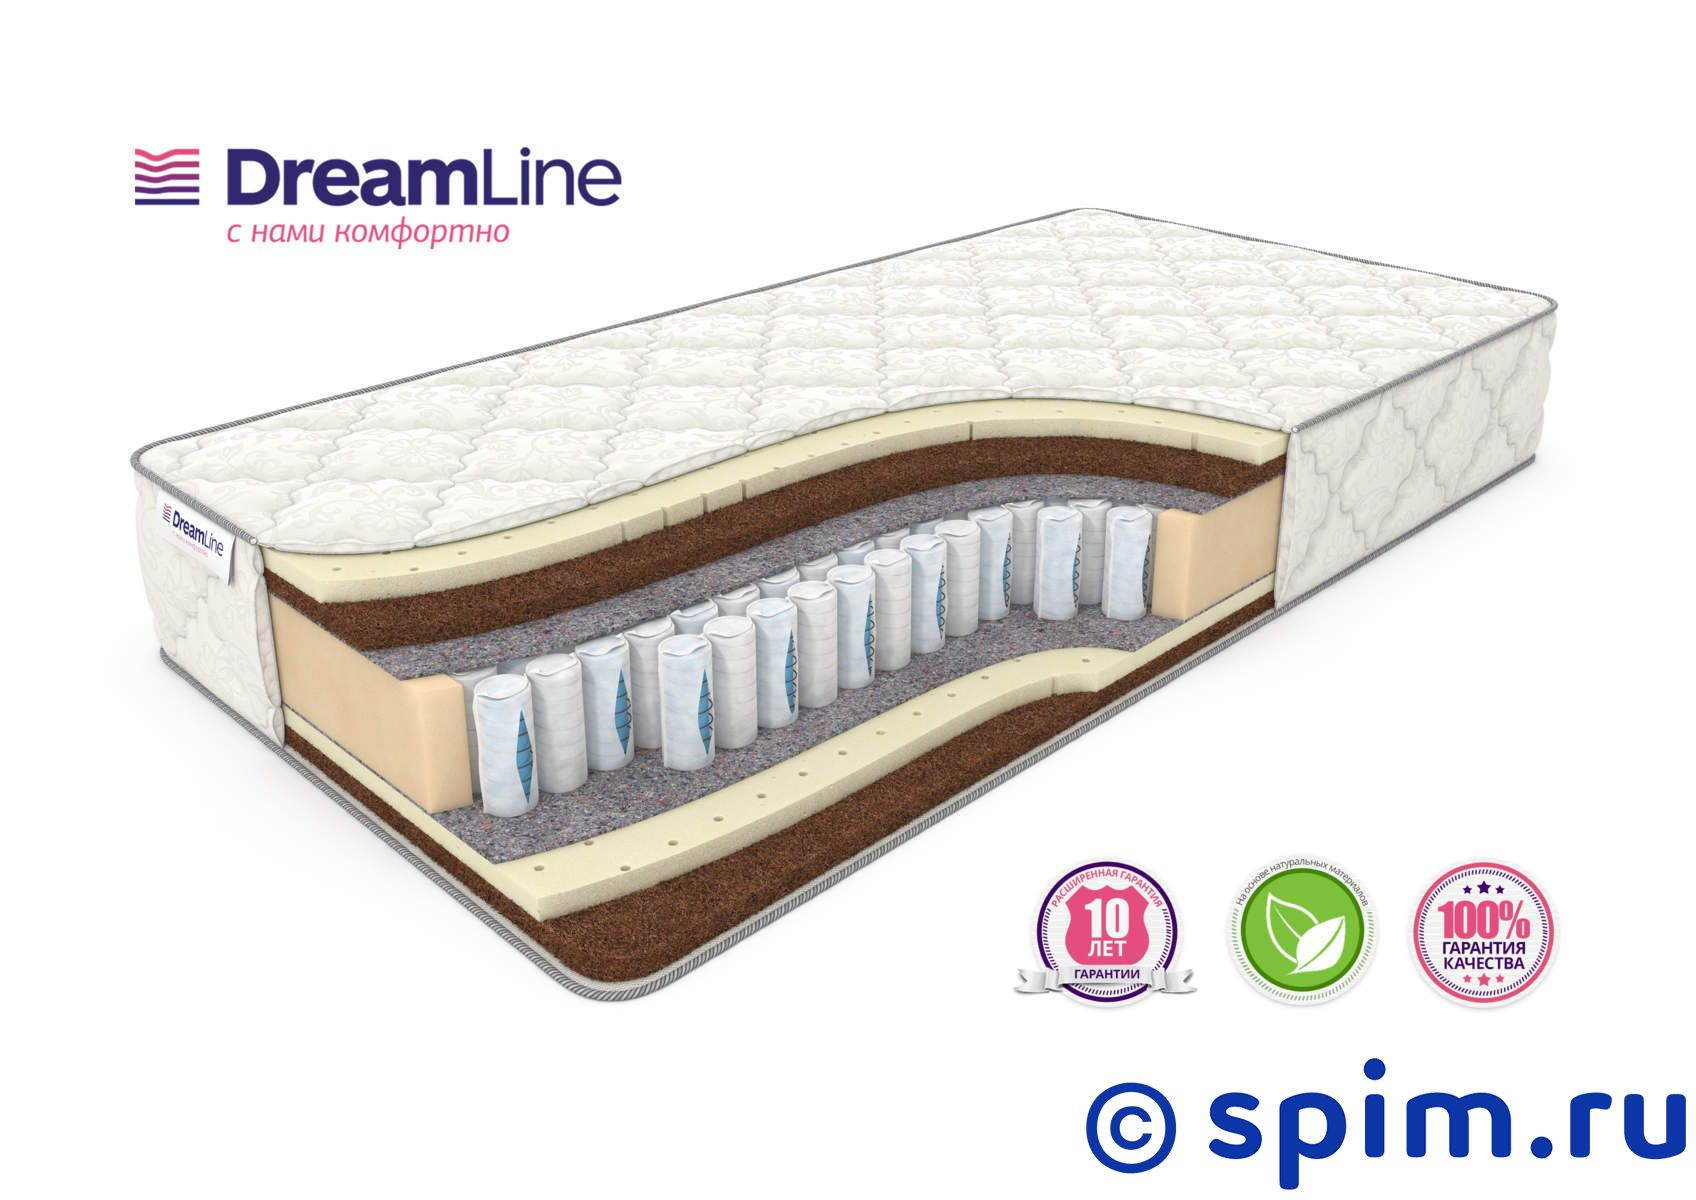 Матрас DreamLine Prime Mix Ds 150х195 см матрас dreamline mix smart zone 120x195